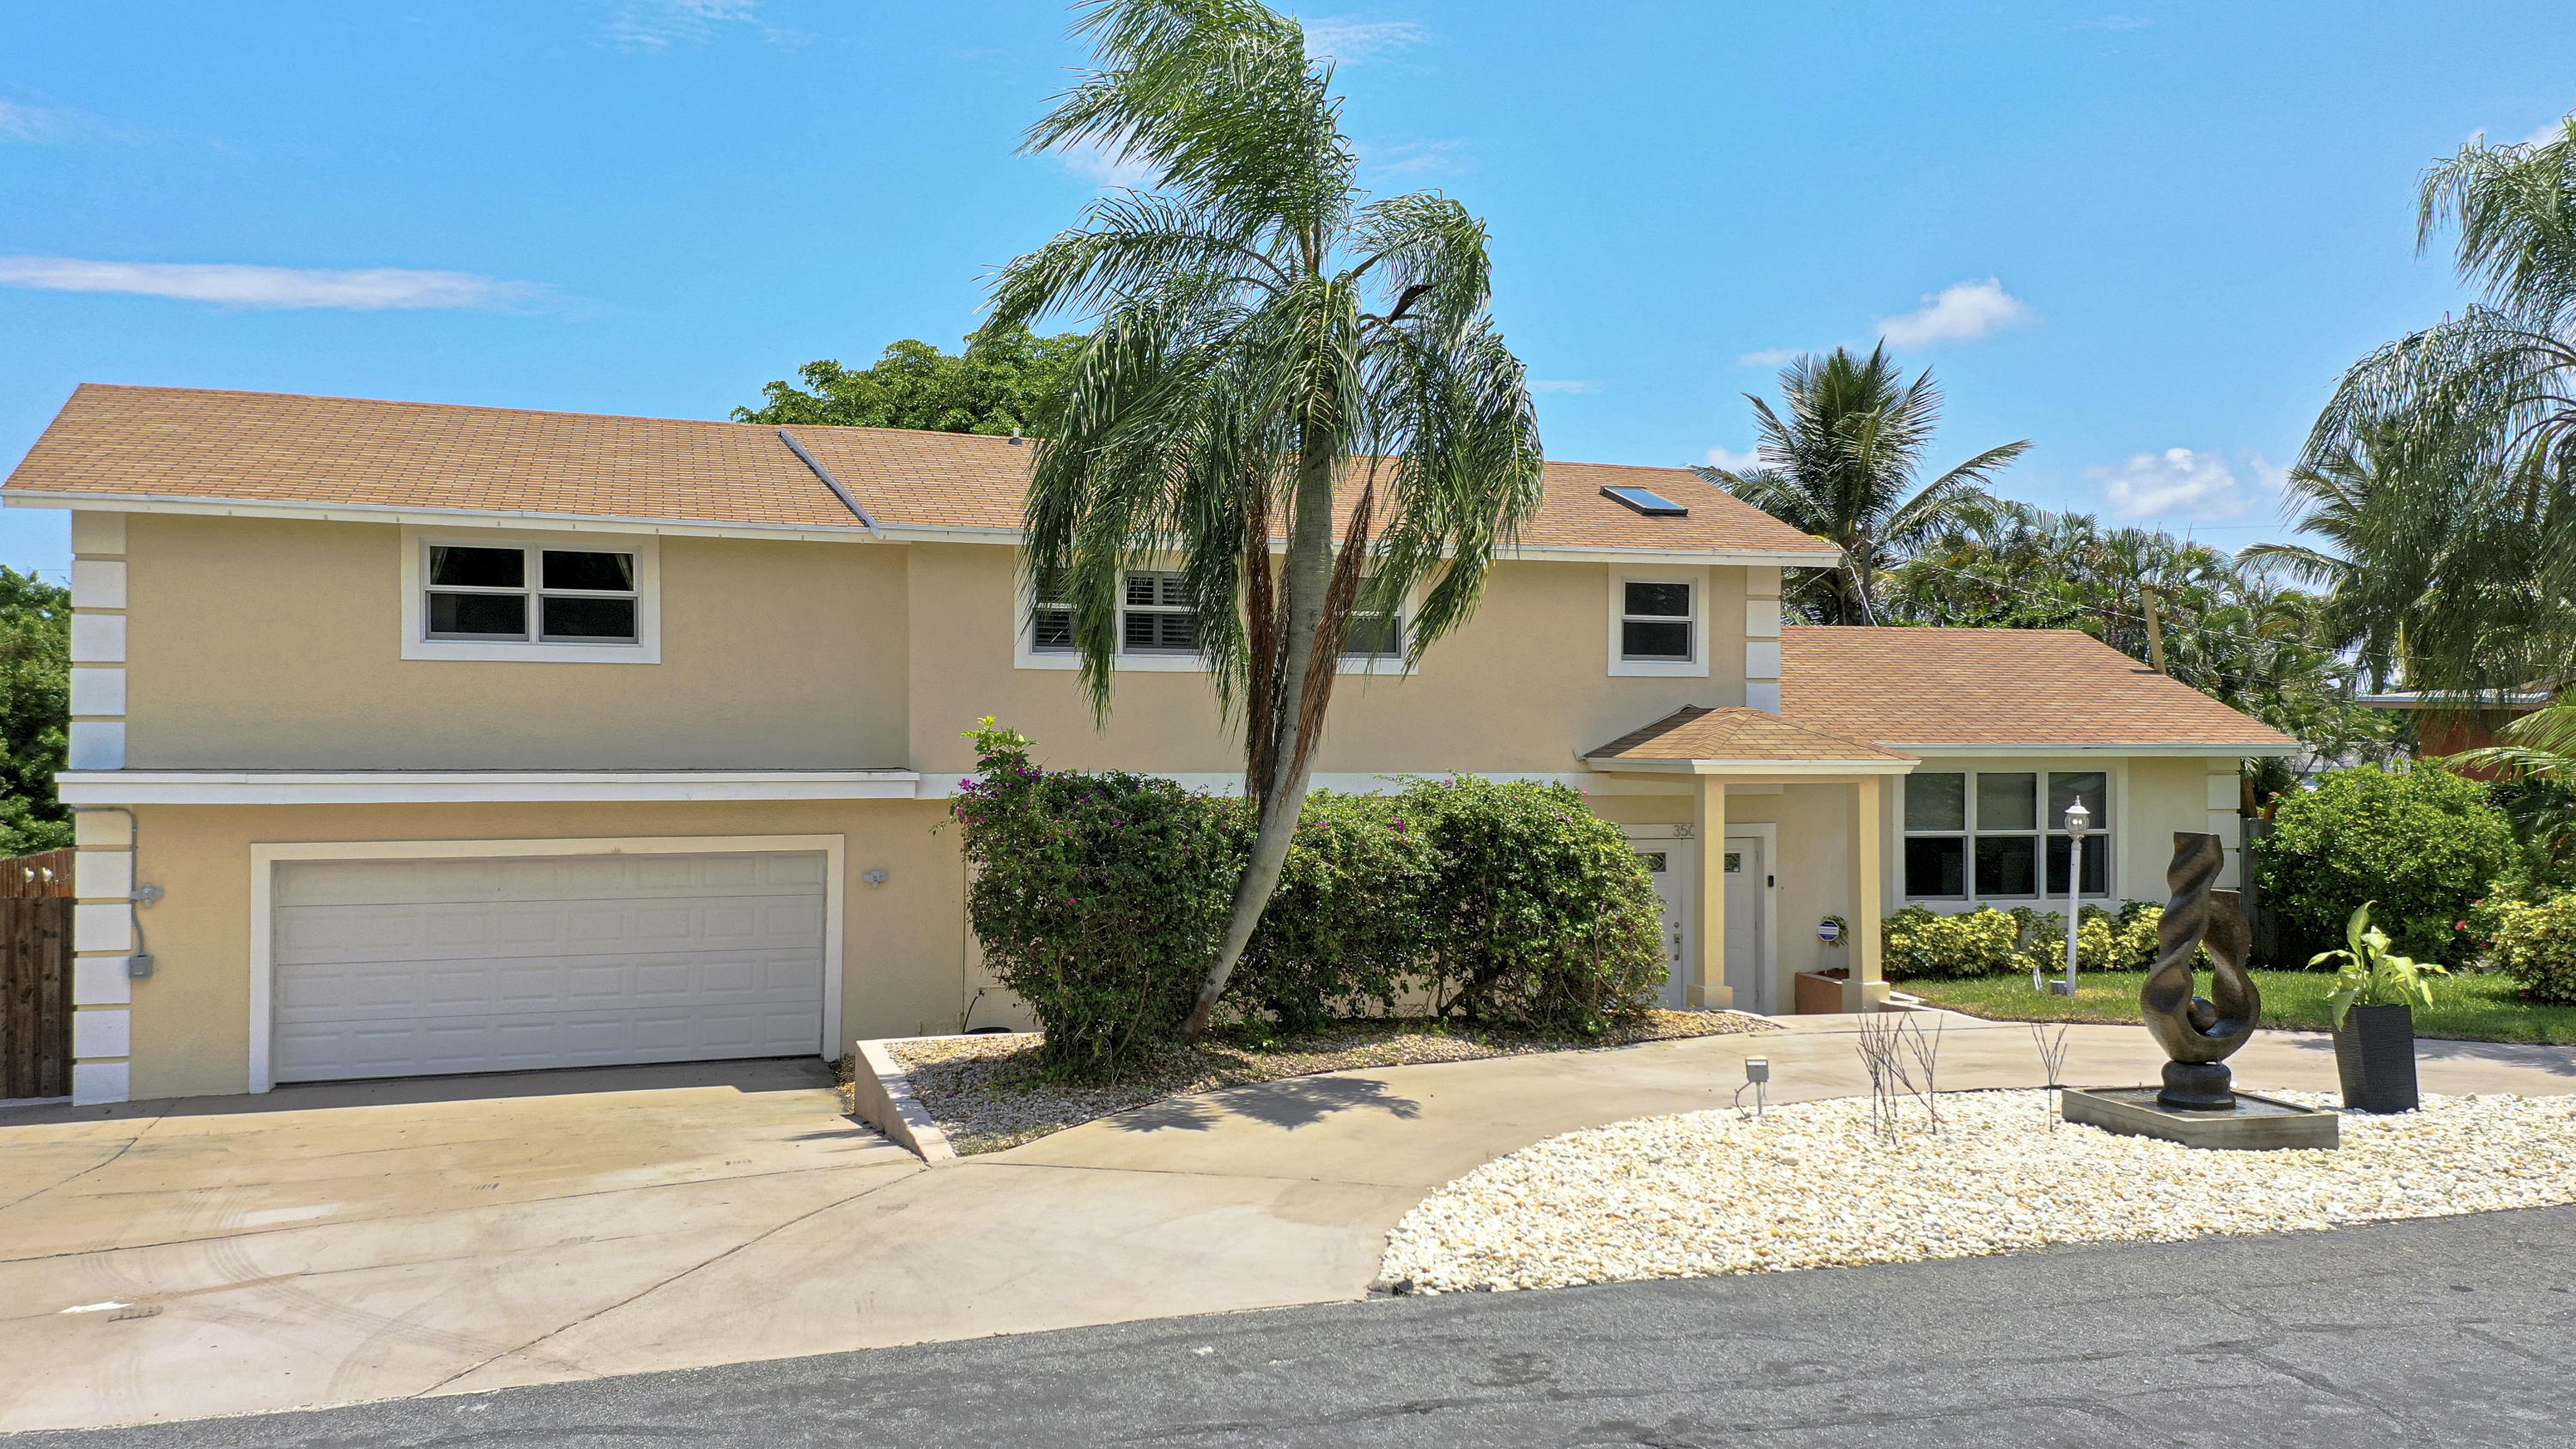 Photo of 3504 SE 1st Street, Boynton Beach, FL 33435